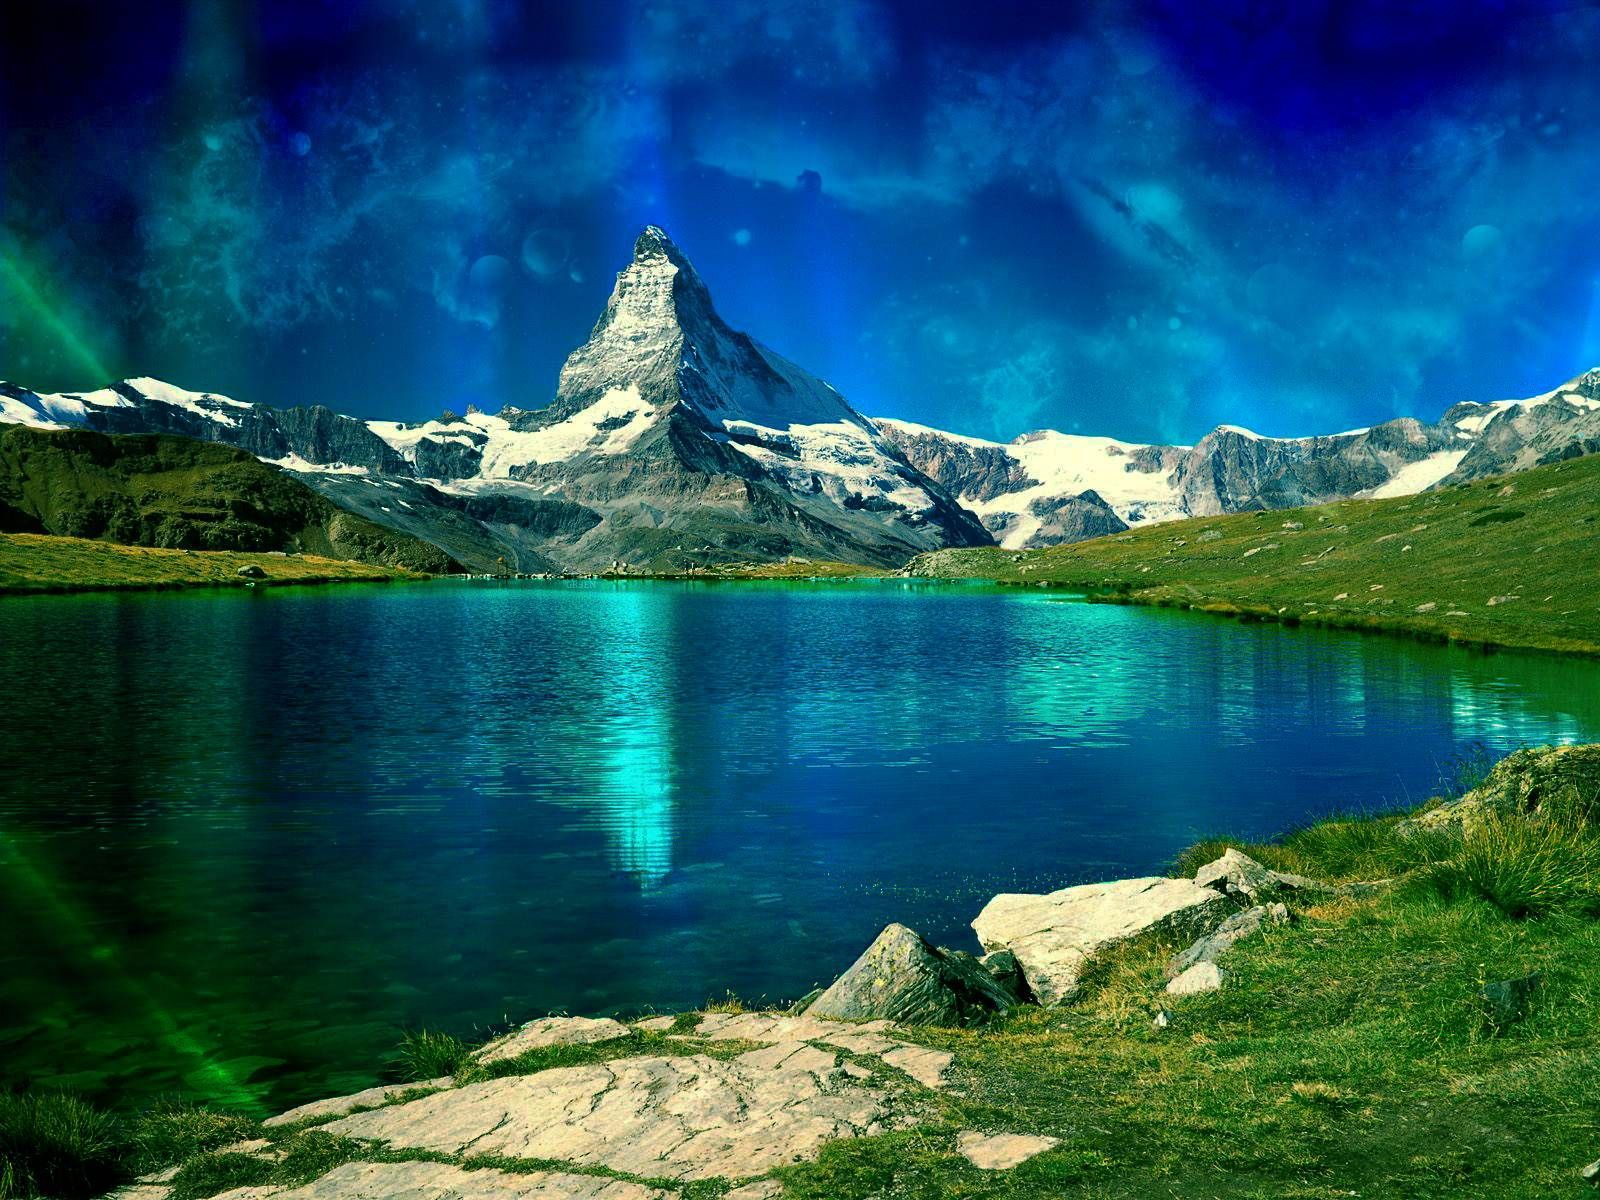 Fondos De Escritorio Wallpaper 3d Paisaje Montanas Nature Wallpaper Beautiful Scenery Wallpaper Landscape Wallpaper